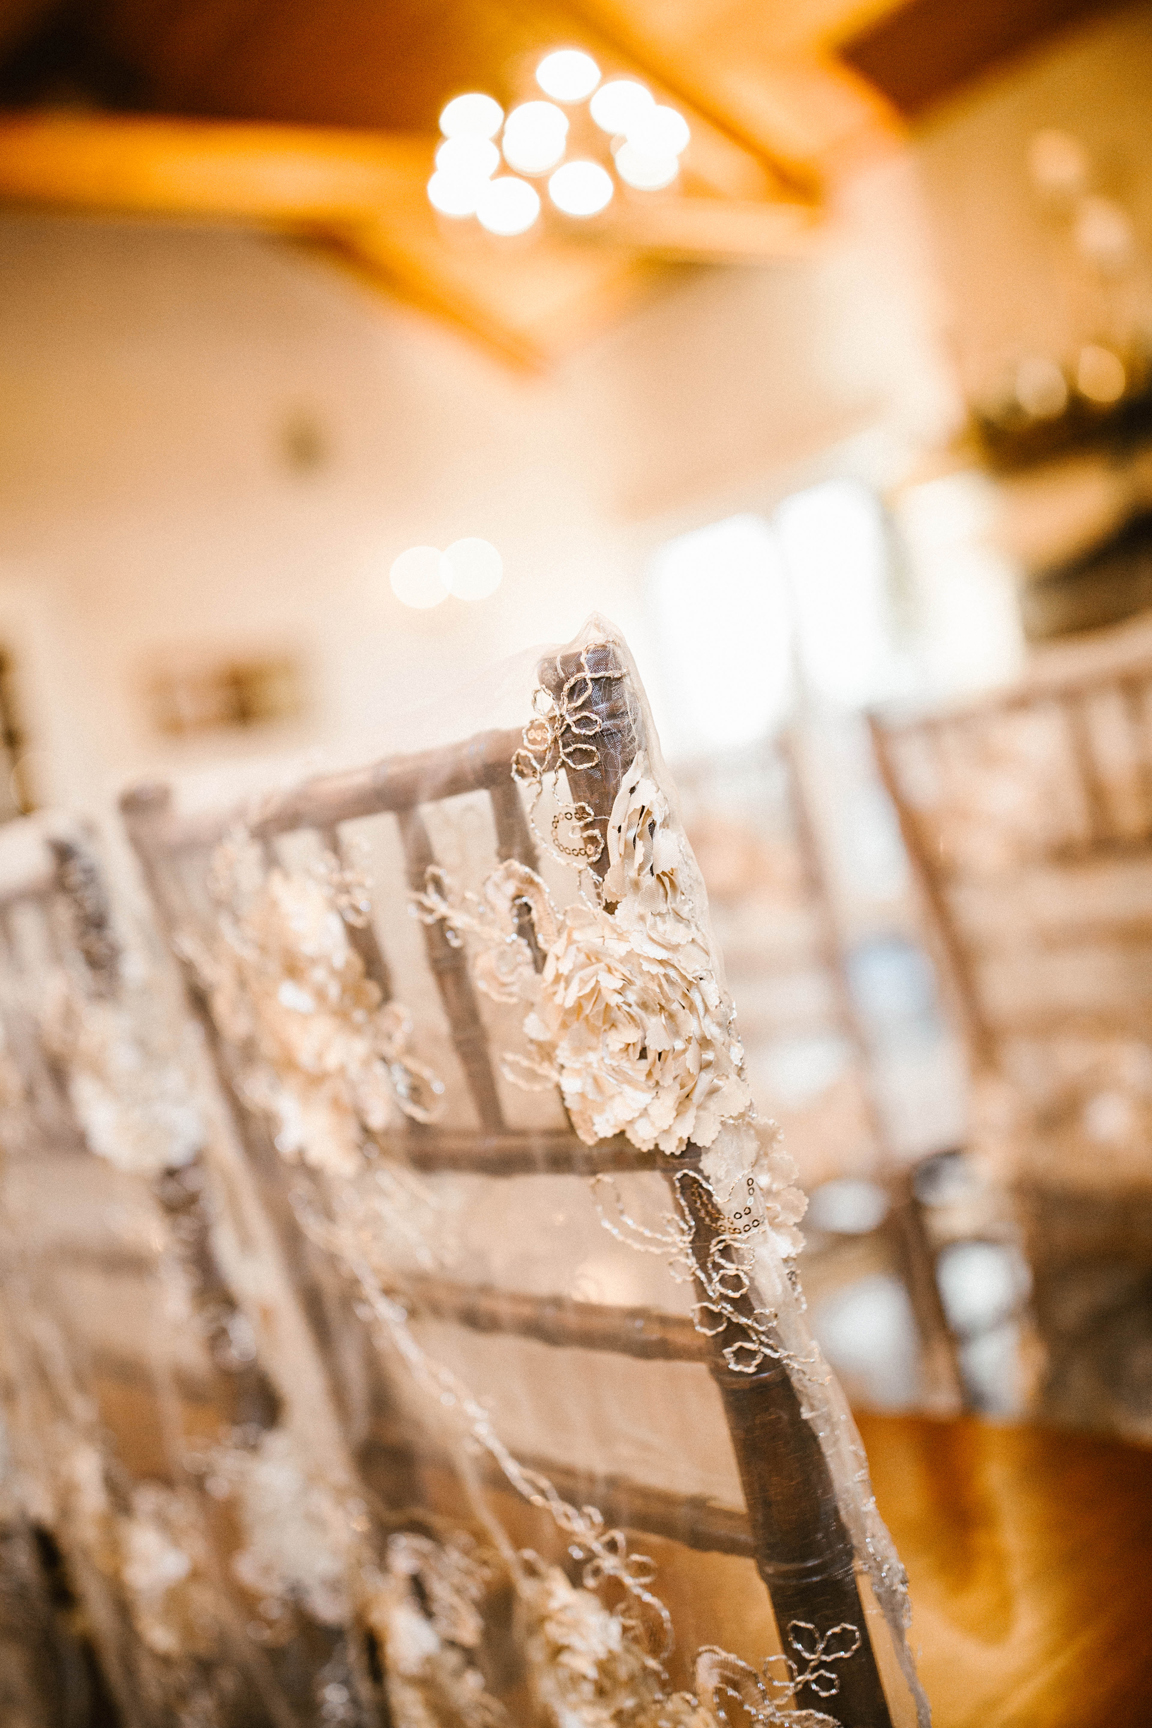 DeLille+Cellars_The+Chateau_Woodinville_2017_Weddings+In+Woodinville102.jpg